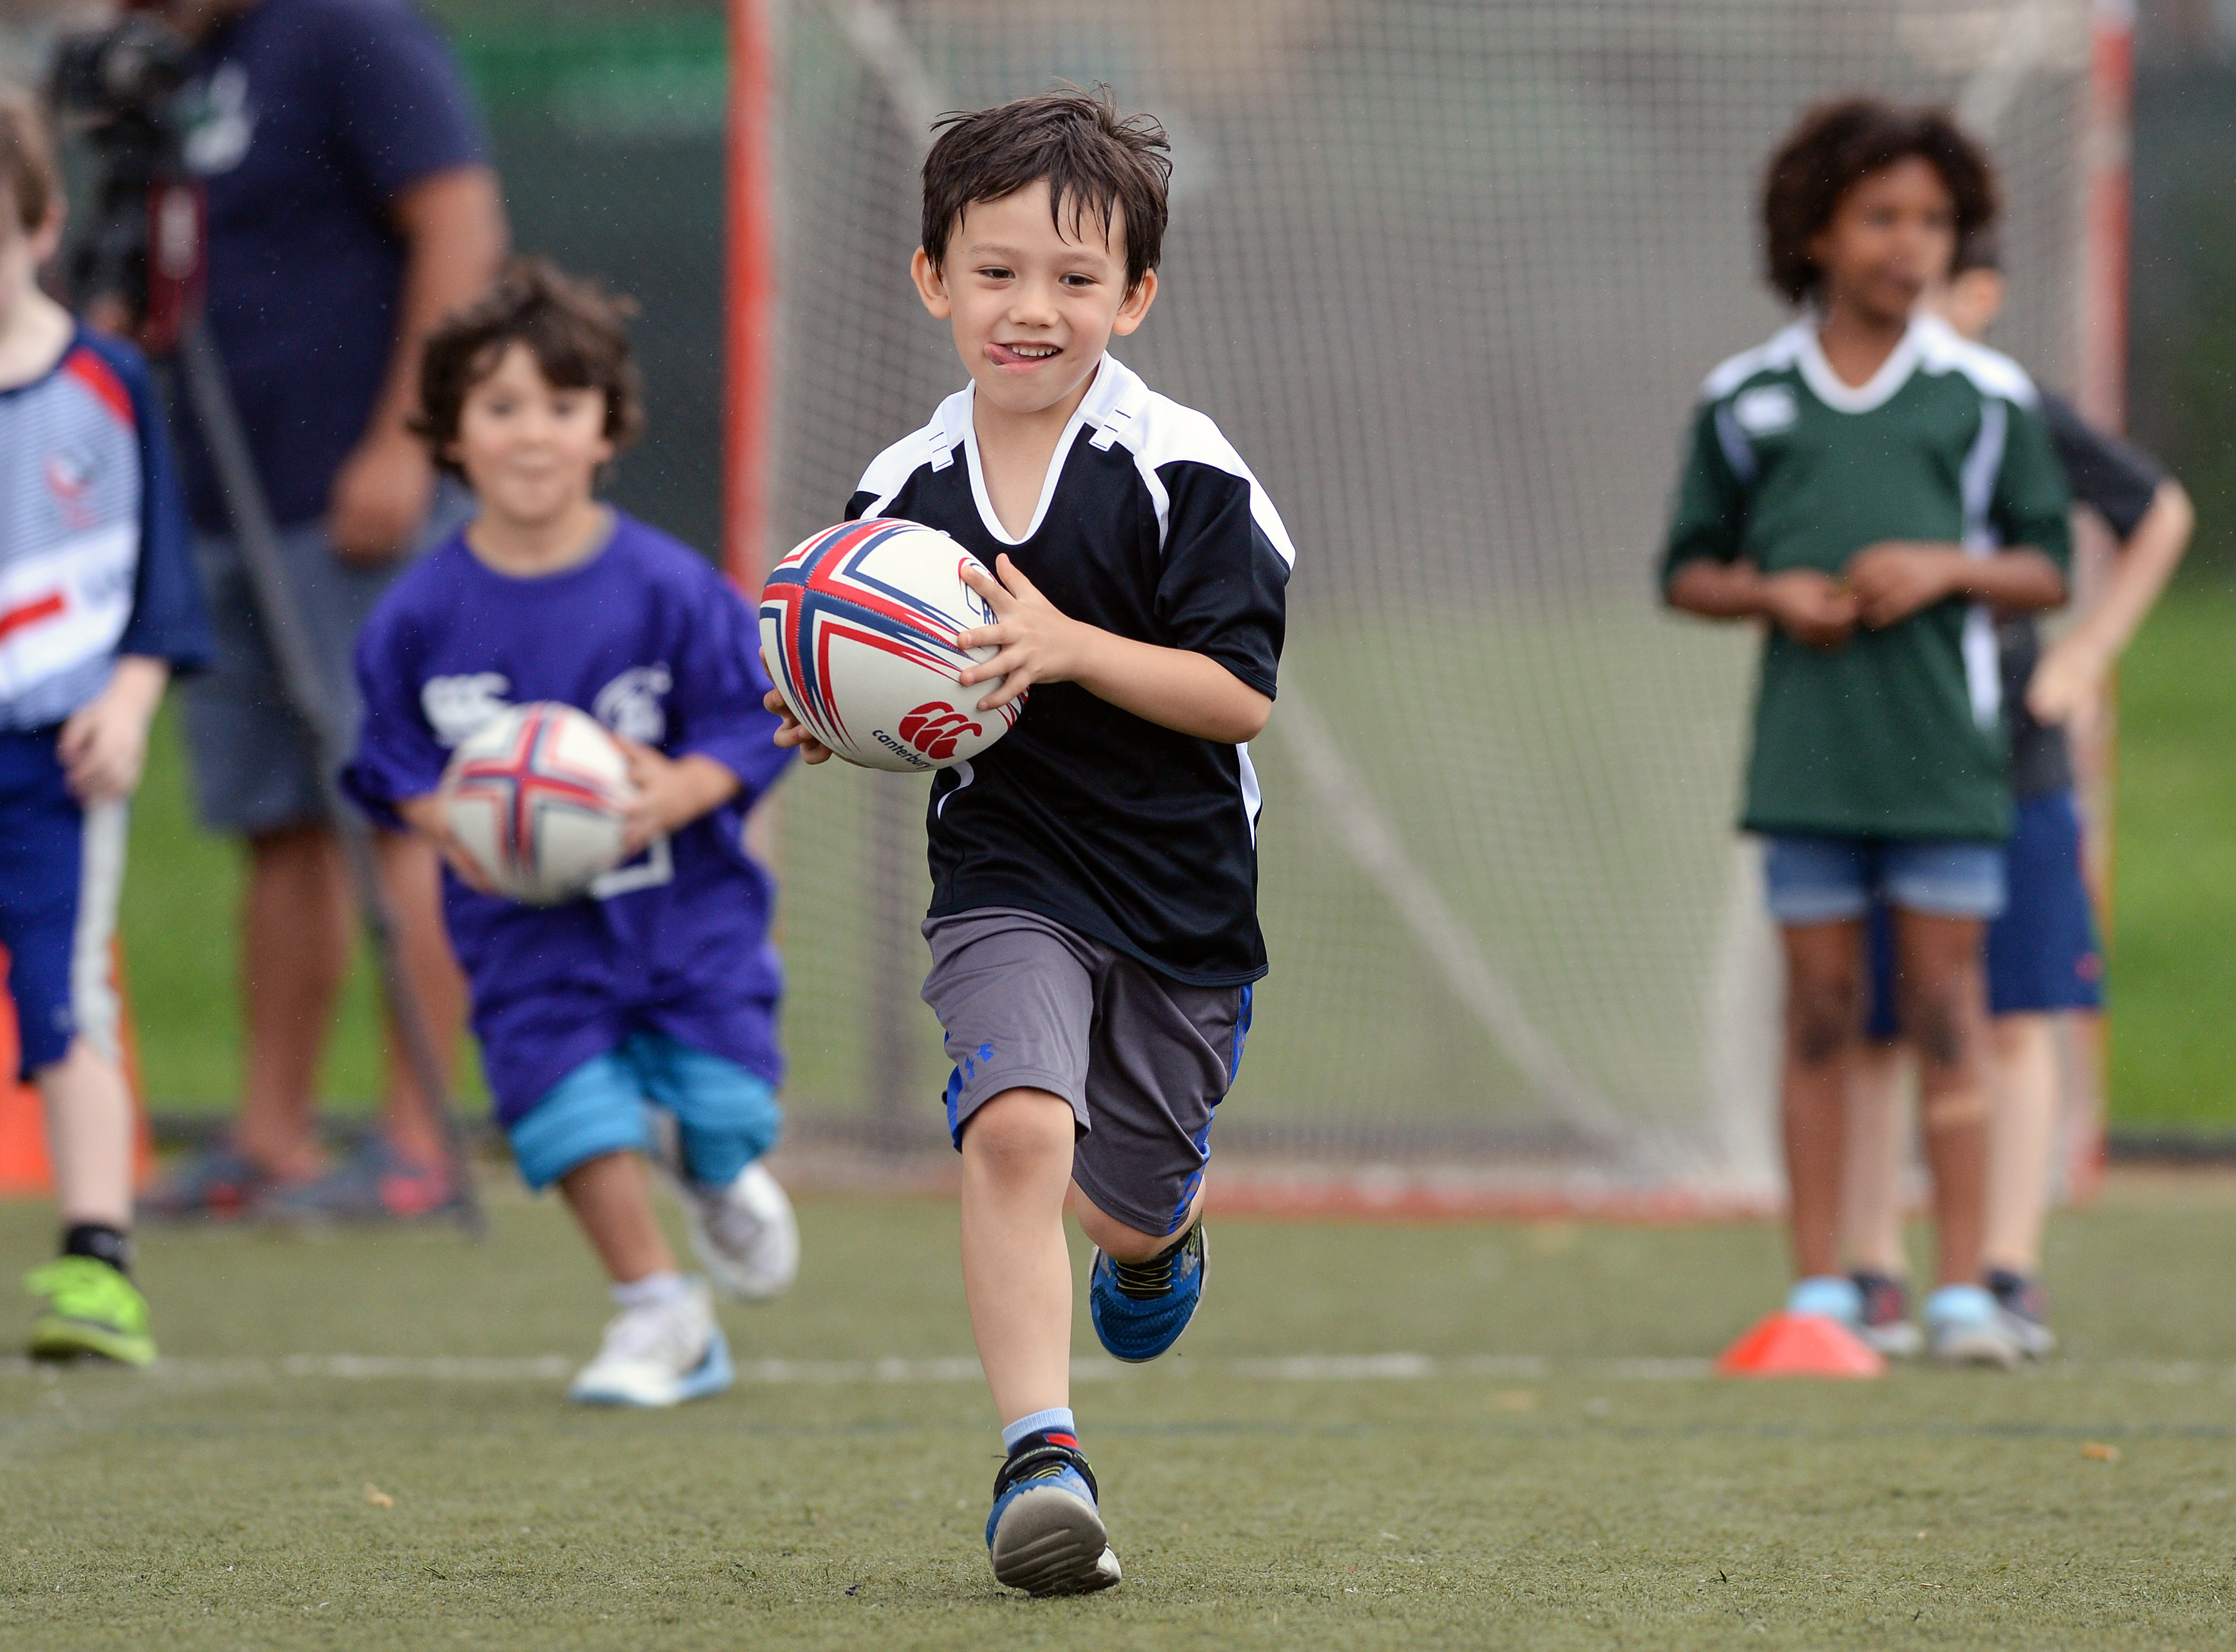 Smiling Child playing Rugby on the field